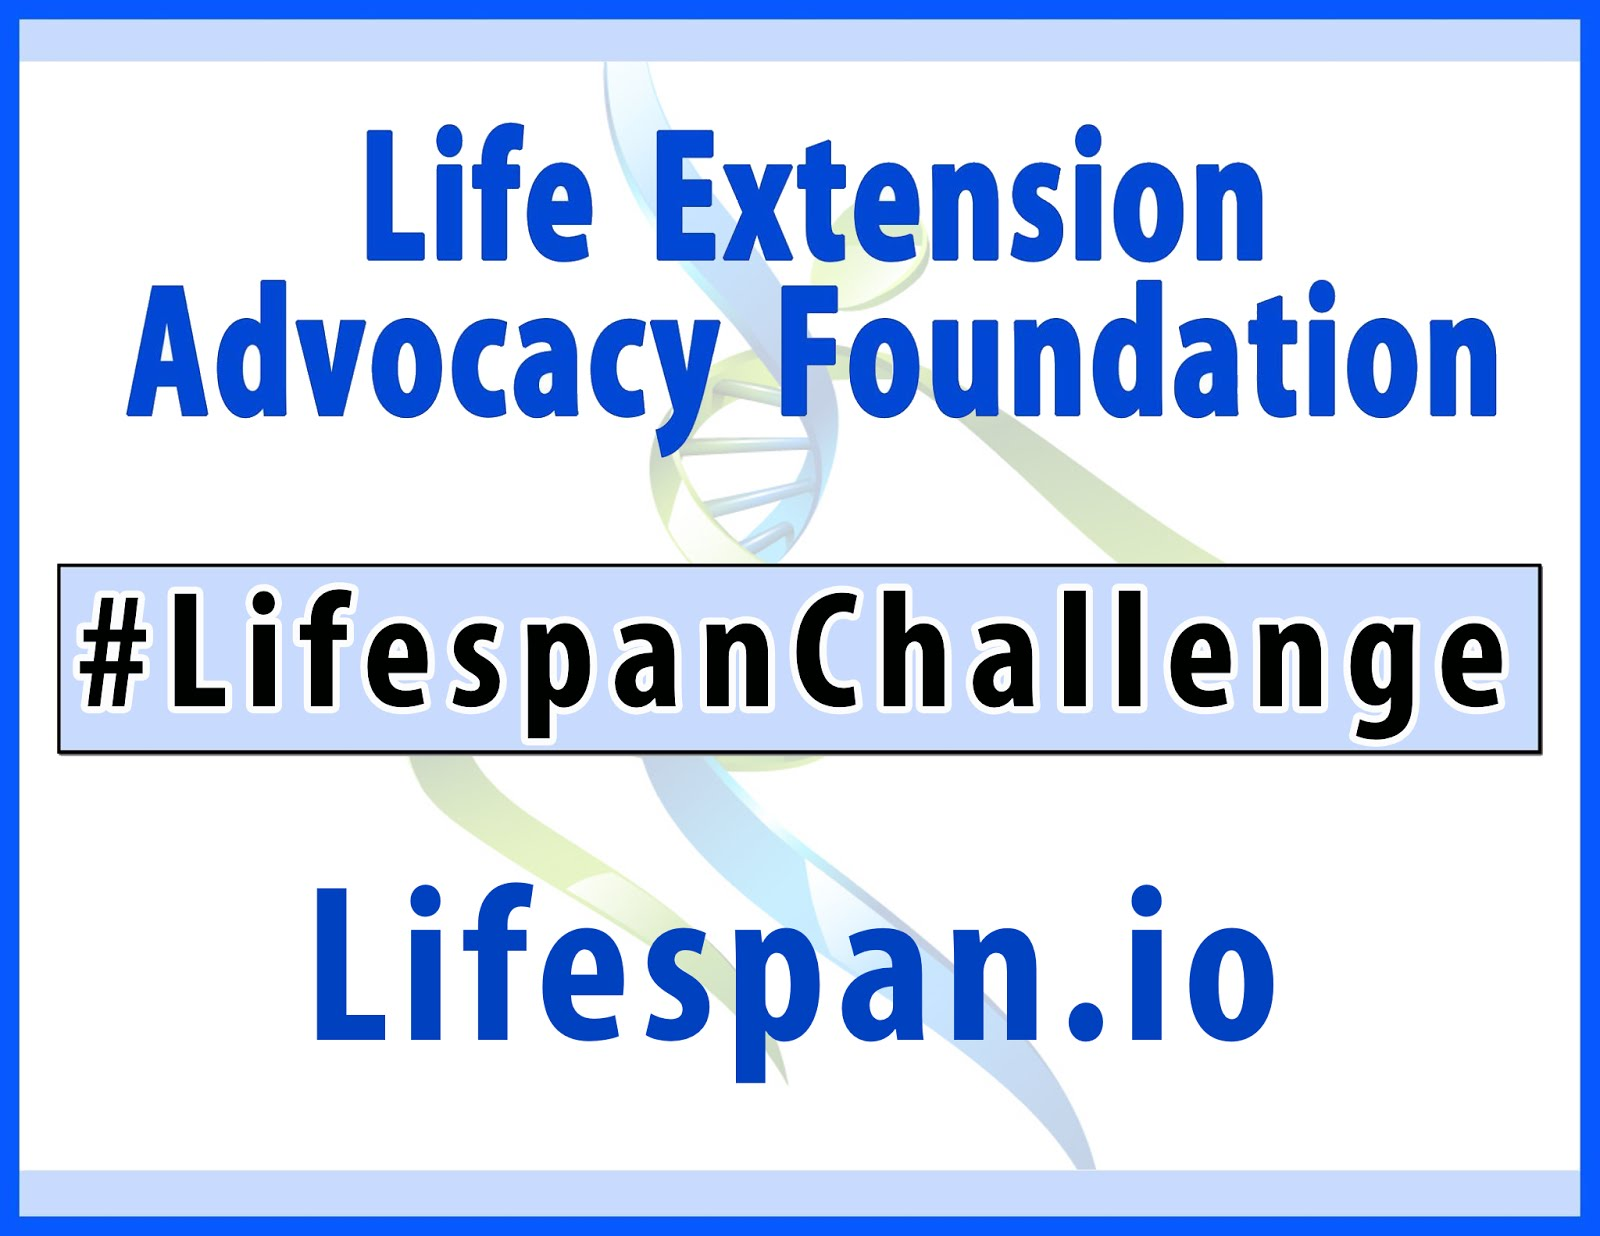 LIFE EXTENSION ADVOCACY FOUNDATION: